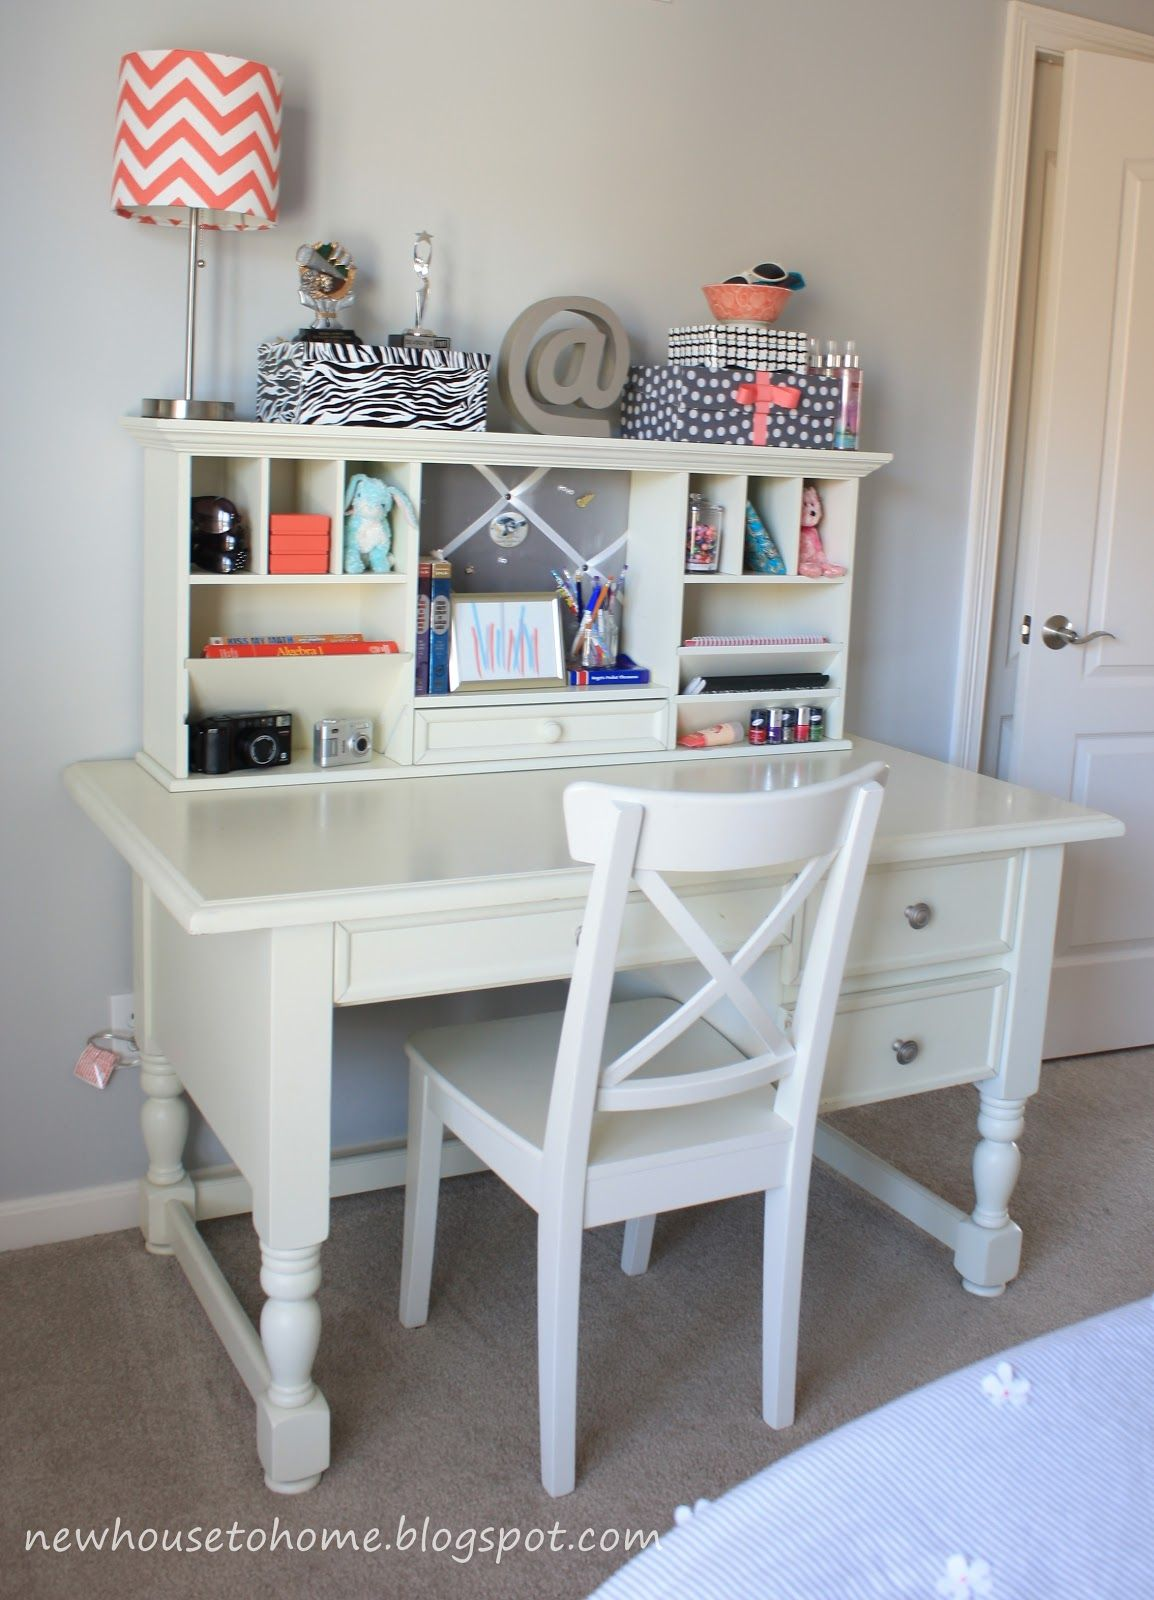 White Desk For Girls Room Amusing Desk For Girls Room  Every Teenage Girl Needs A Place To Be Decorating Design